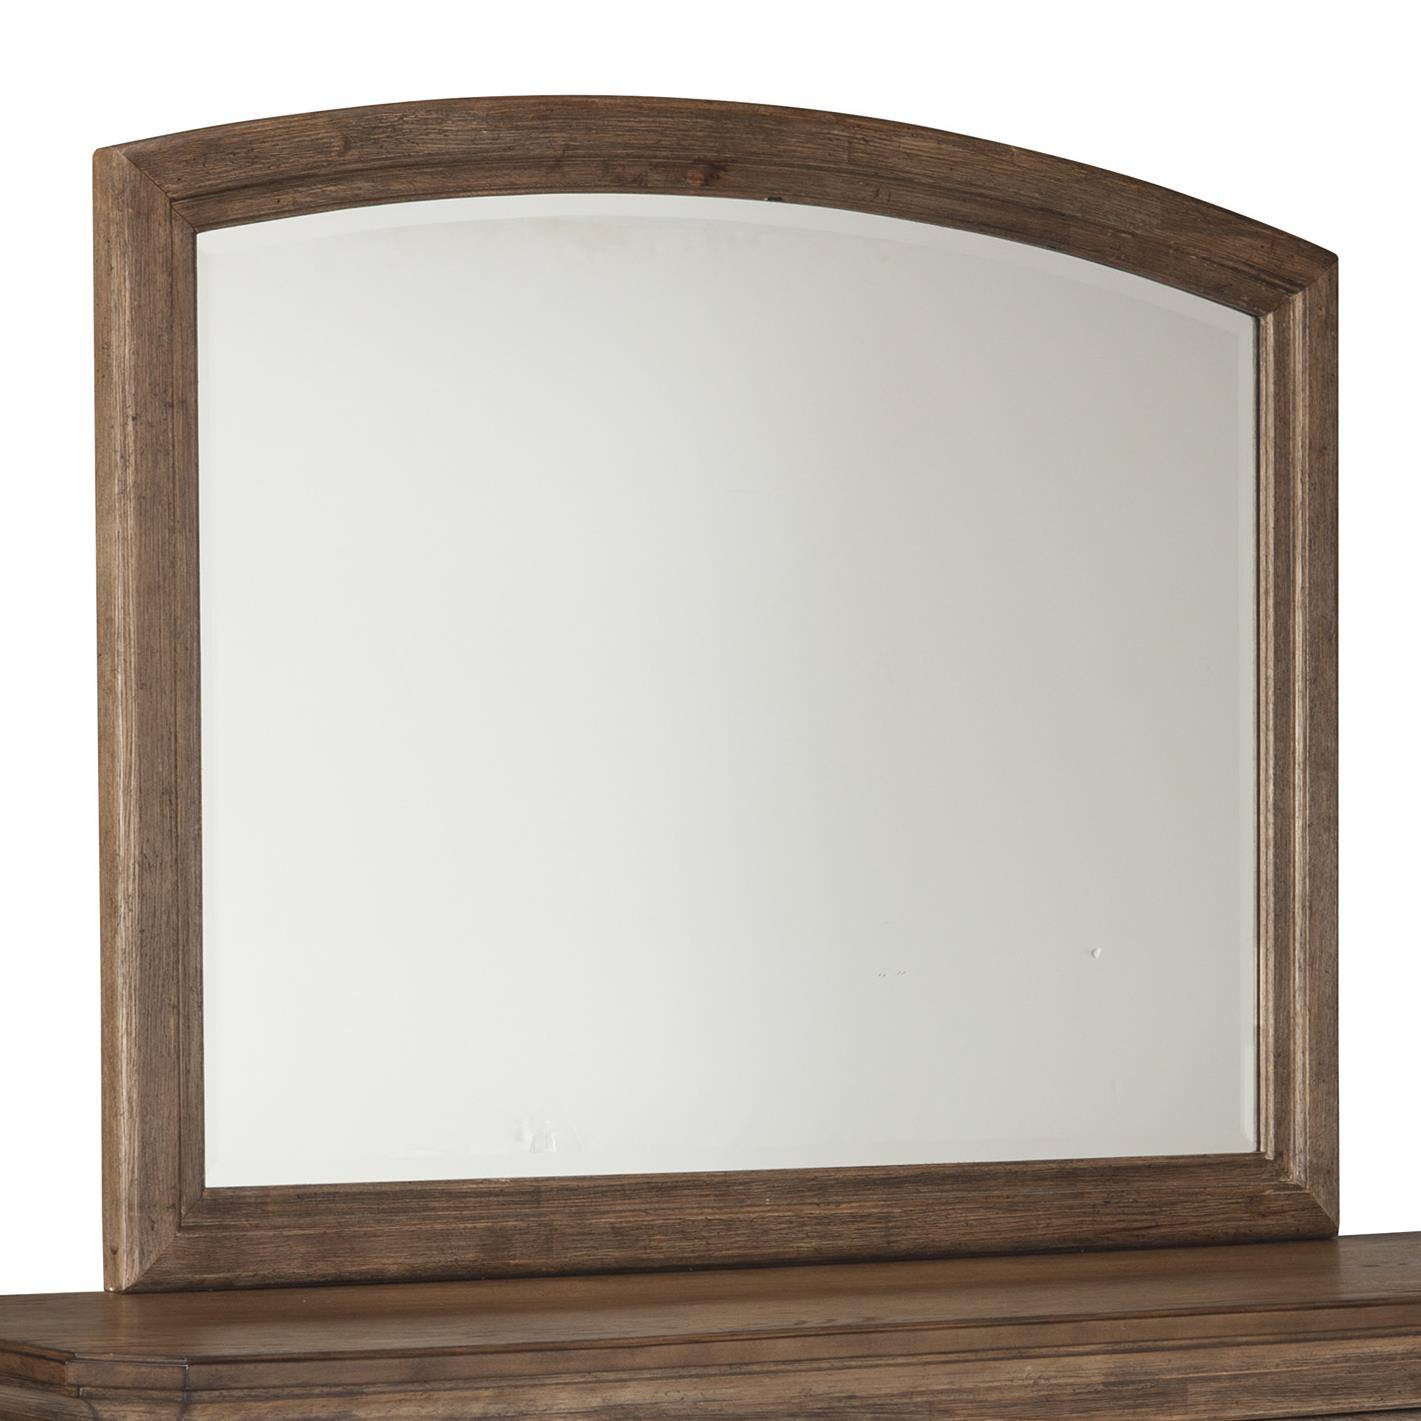 Signature Design by Ashley Maeleen Bedroom Mirror - Item Number: B709-36